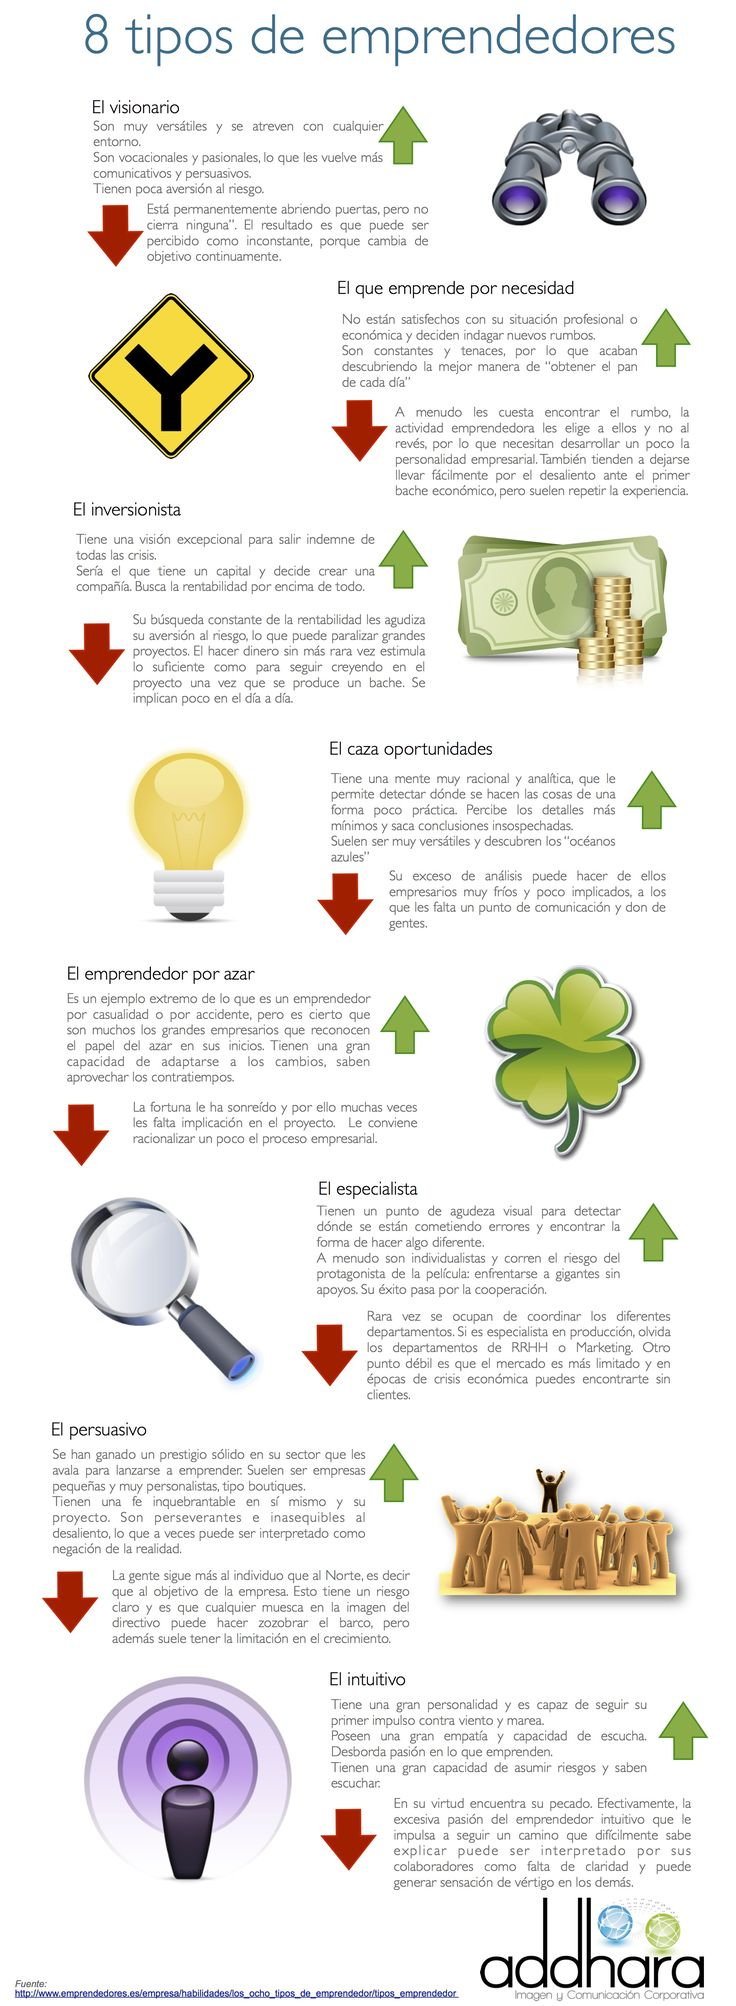 8 tipos de emprendedores #infografia #infographic .what's your?